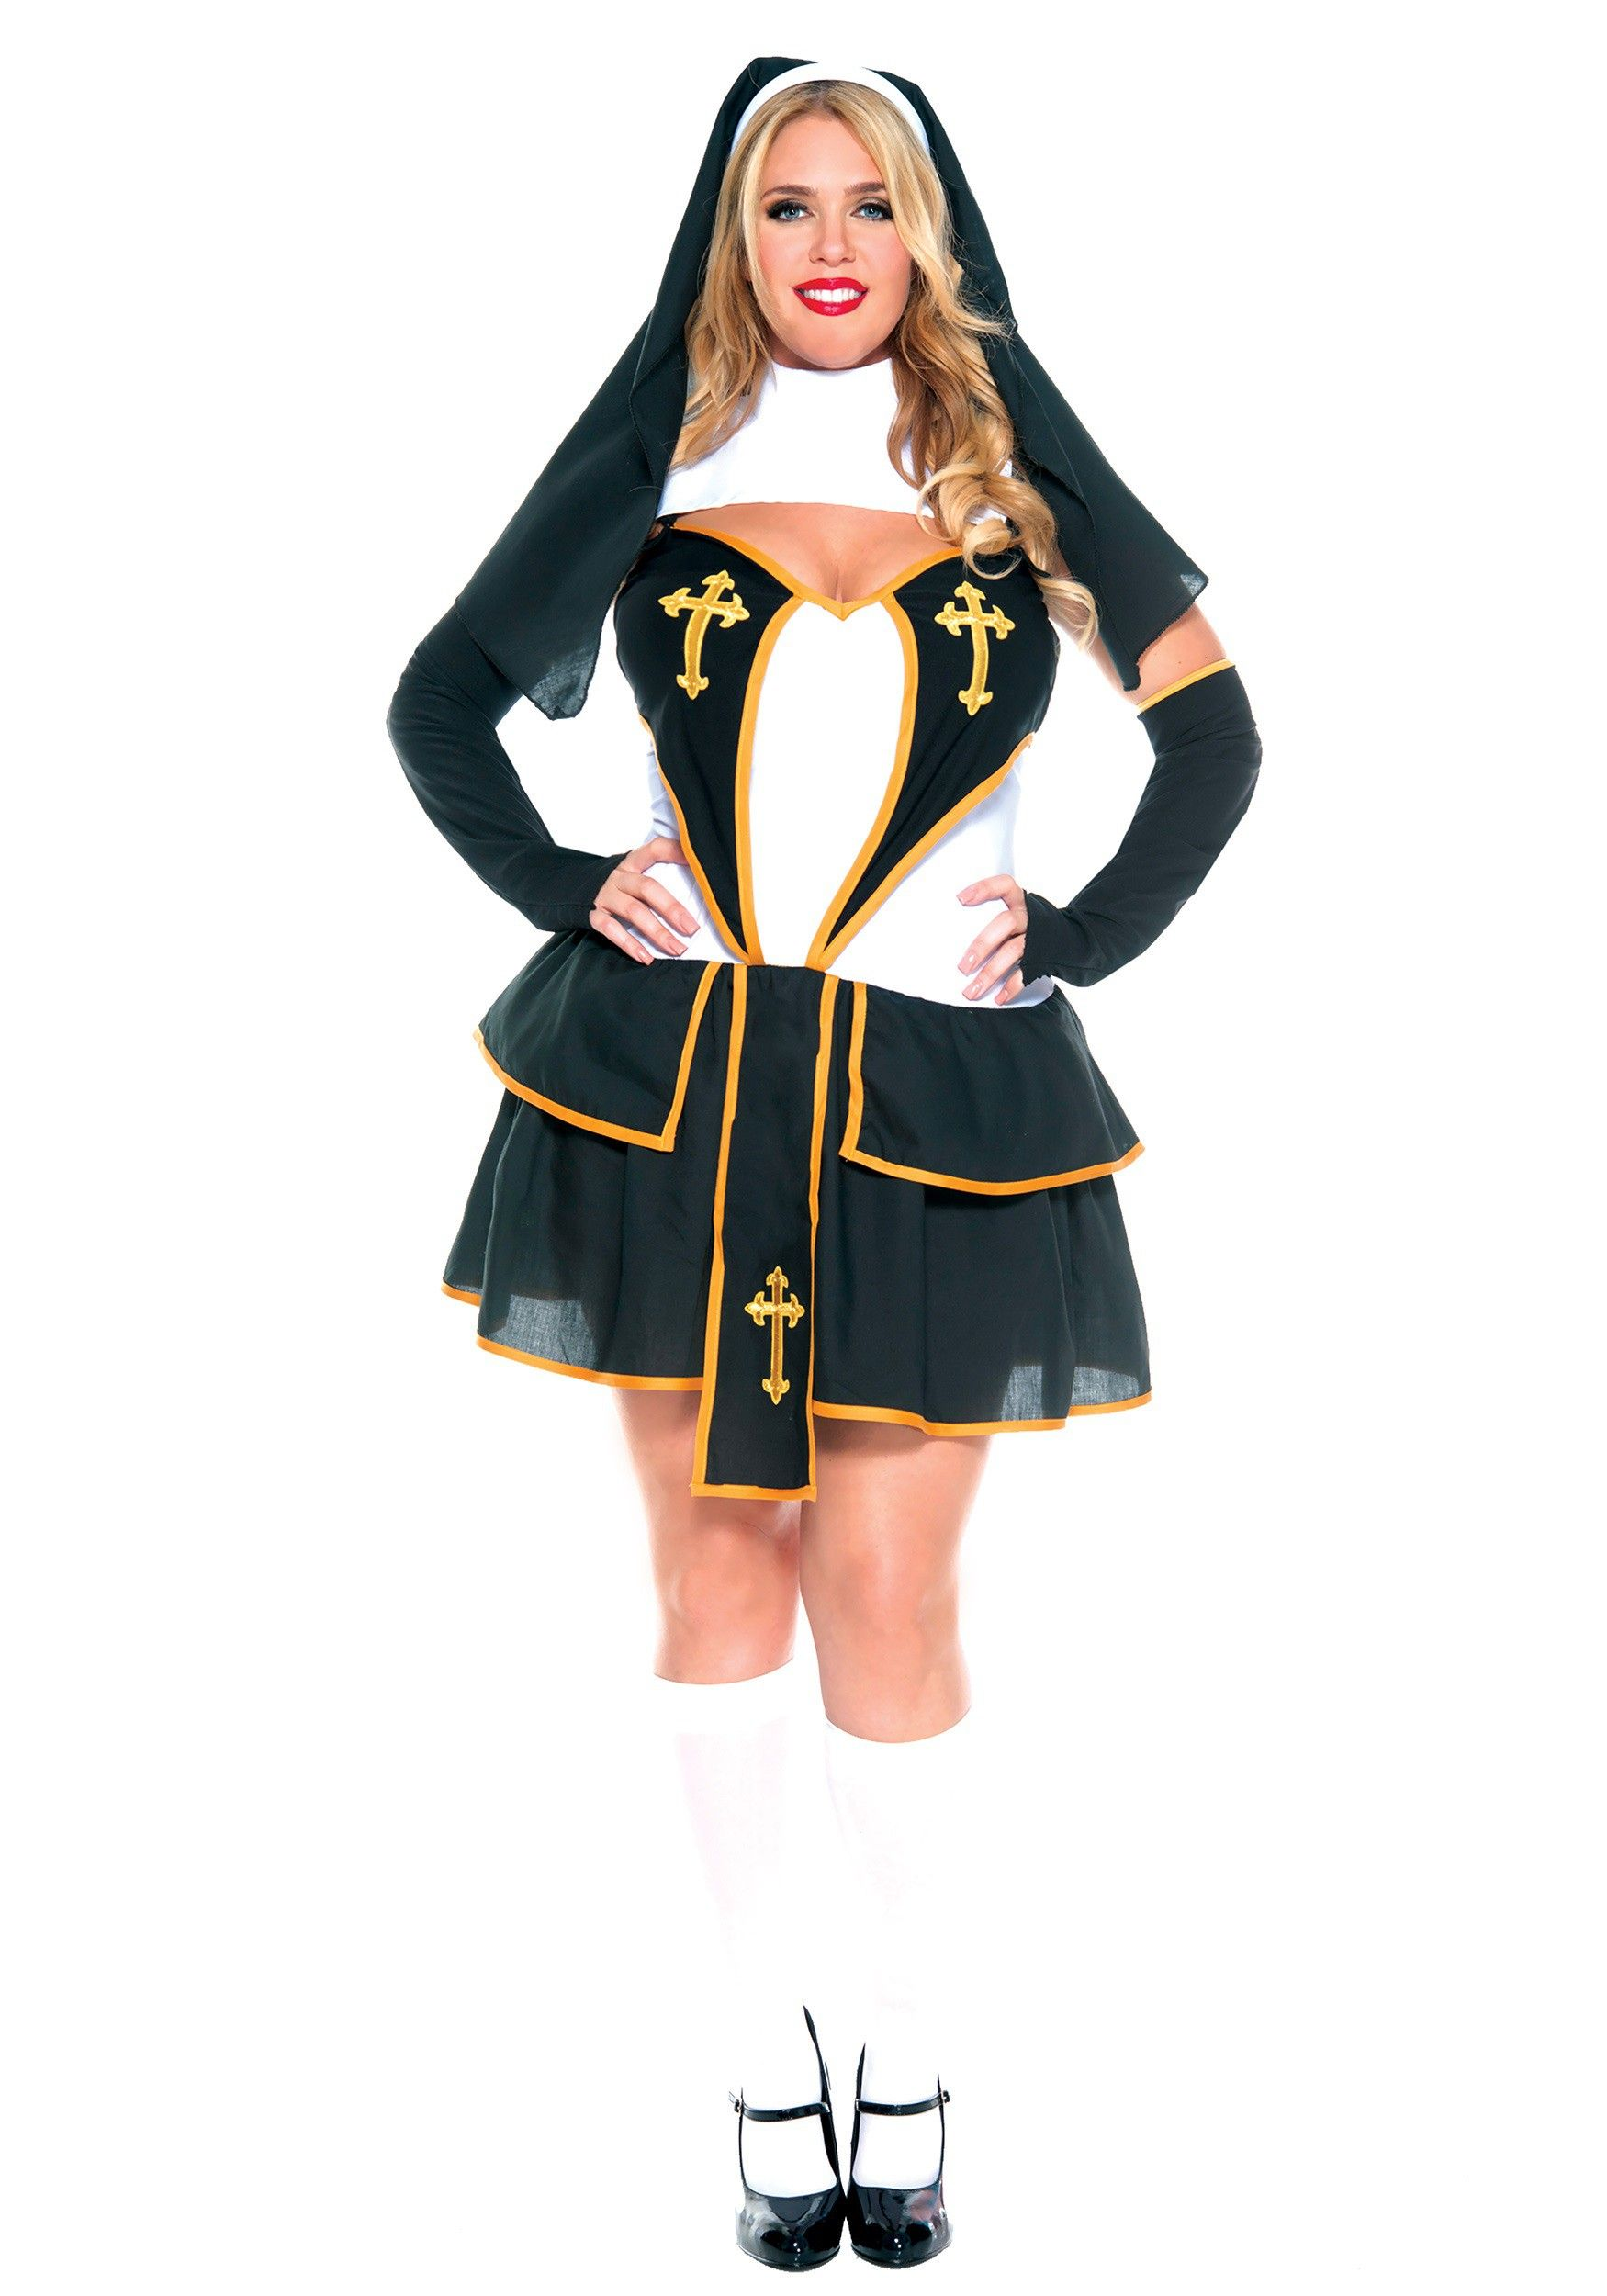 7a2a6d4af9 plus size halloween costumes | plus size sexy halloween costumes | plus  size halloween costume ideas | sexy plus size costumes